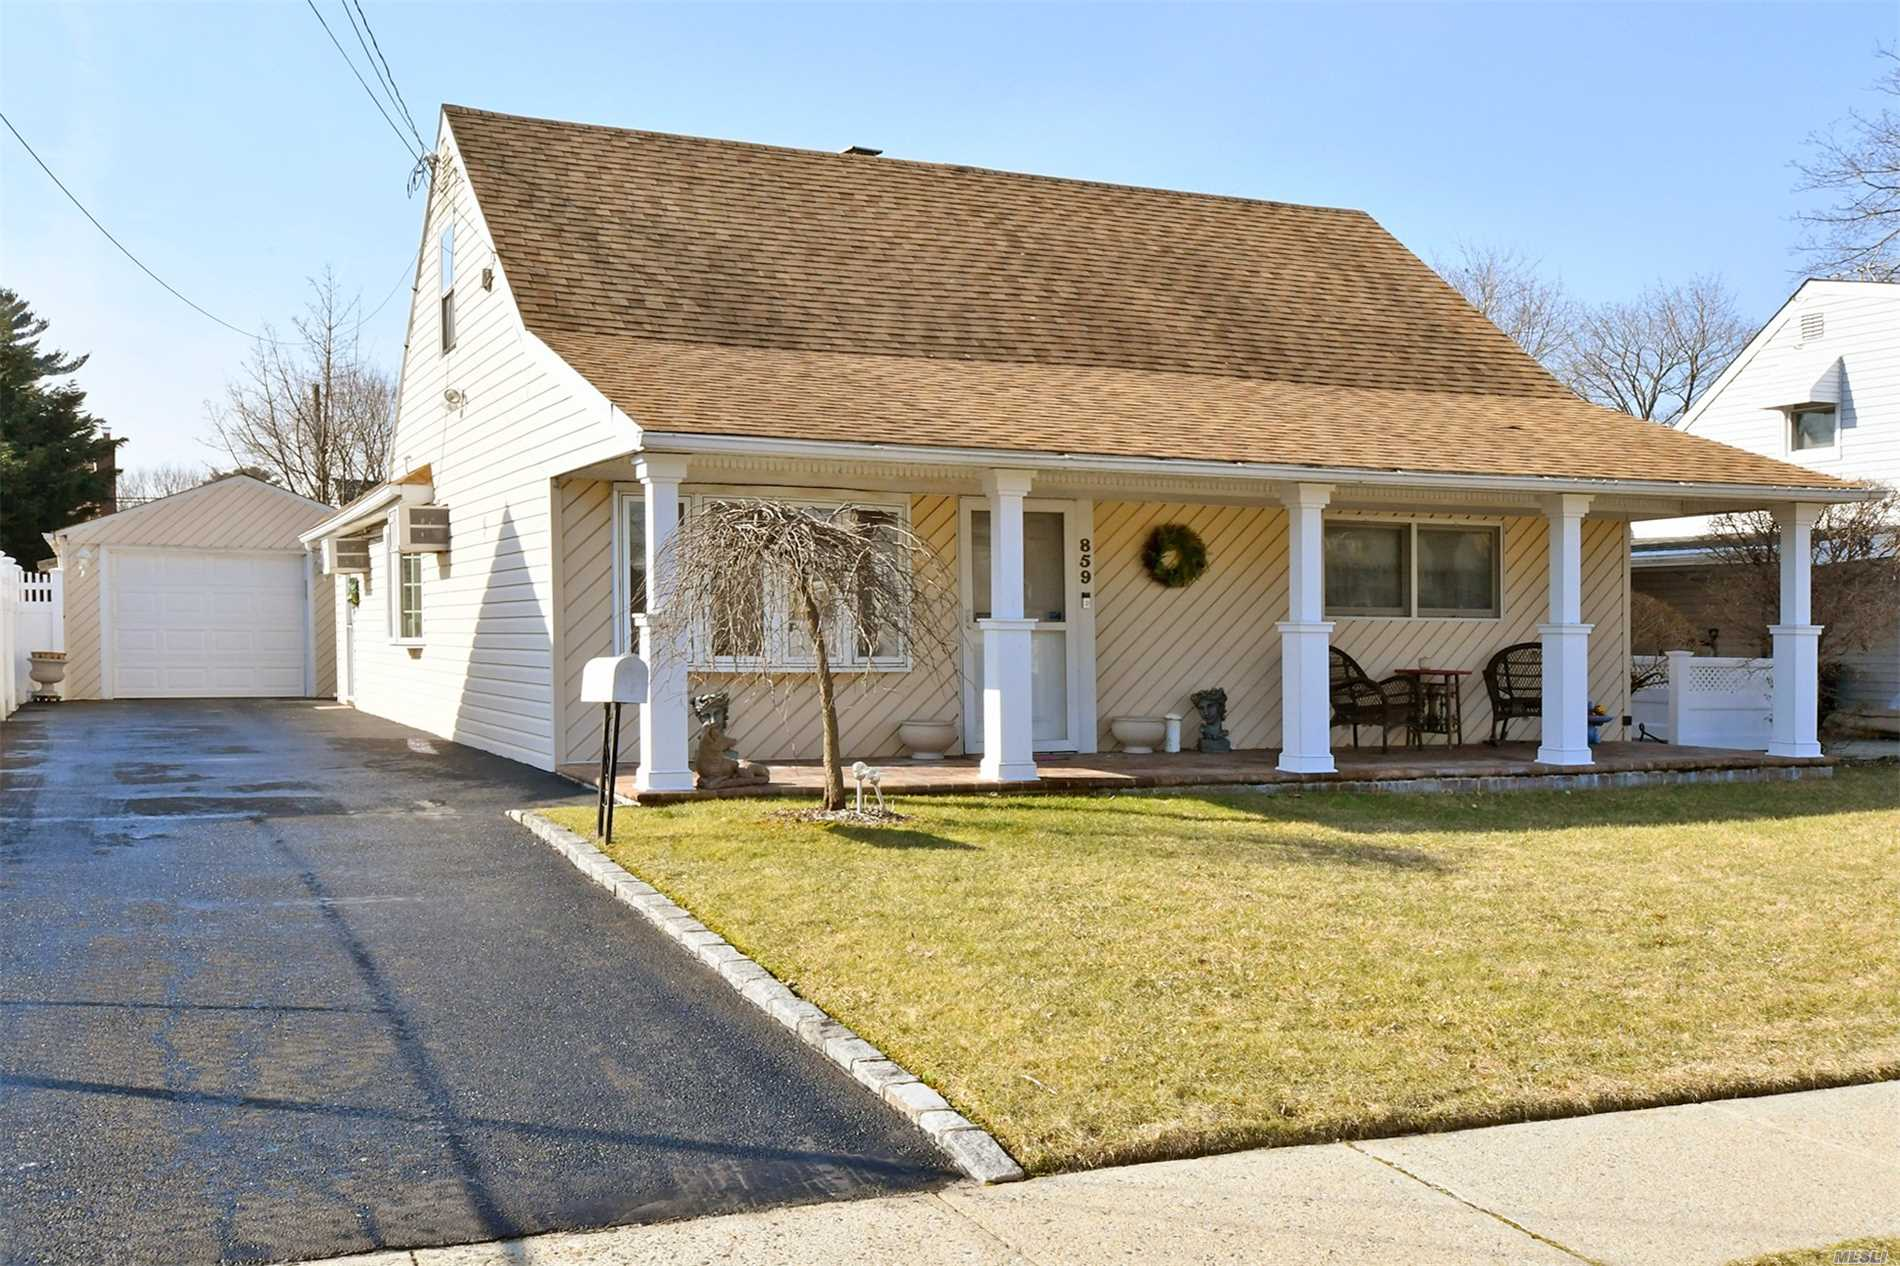 Beautiful Salisbury Cape - Mid Block Location In East Meadow Schl District- Features Sundrenched Kitchen With Sliding Doors That Lead To Lovely And Spacious Back Yard, Perfect For Entertaining. 4 Bdrms W/Den Option -2 Full Baths. Low Taxes. Won't Last.